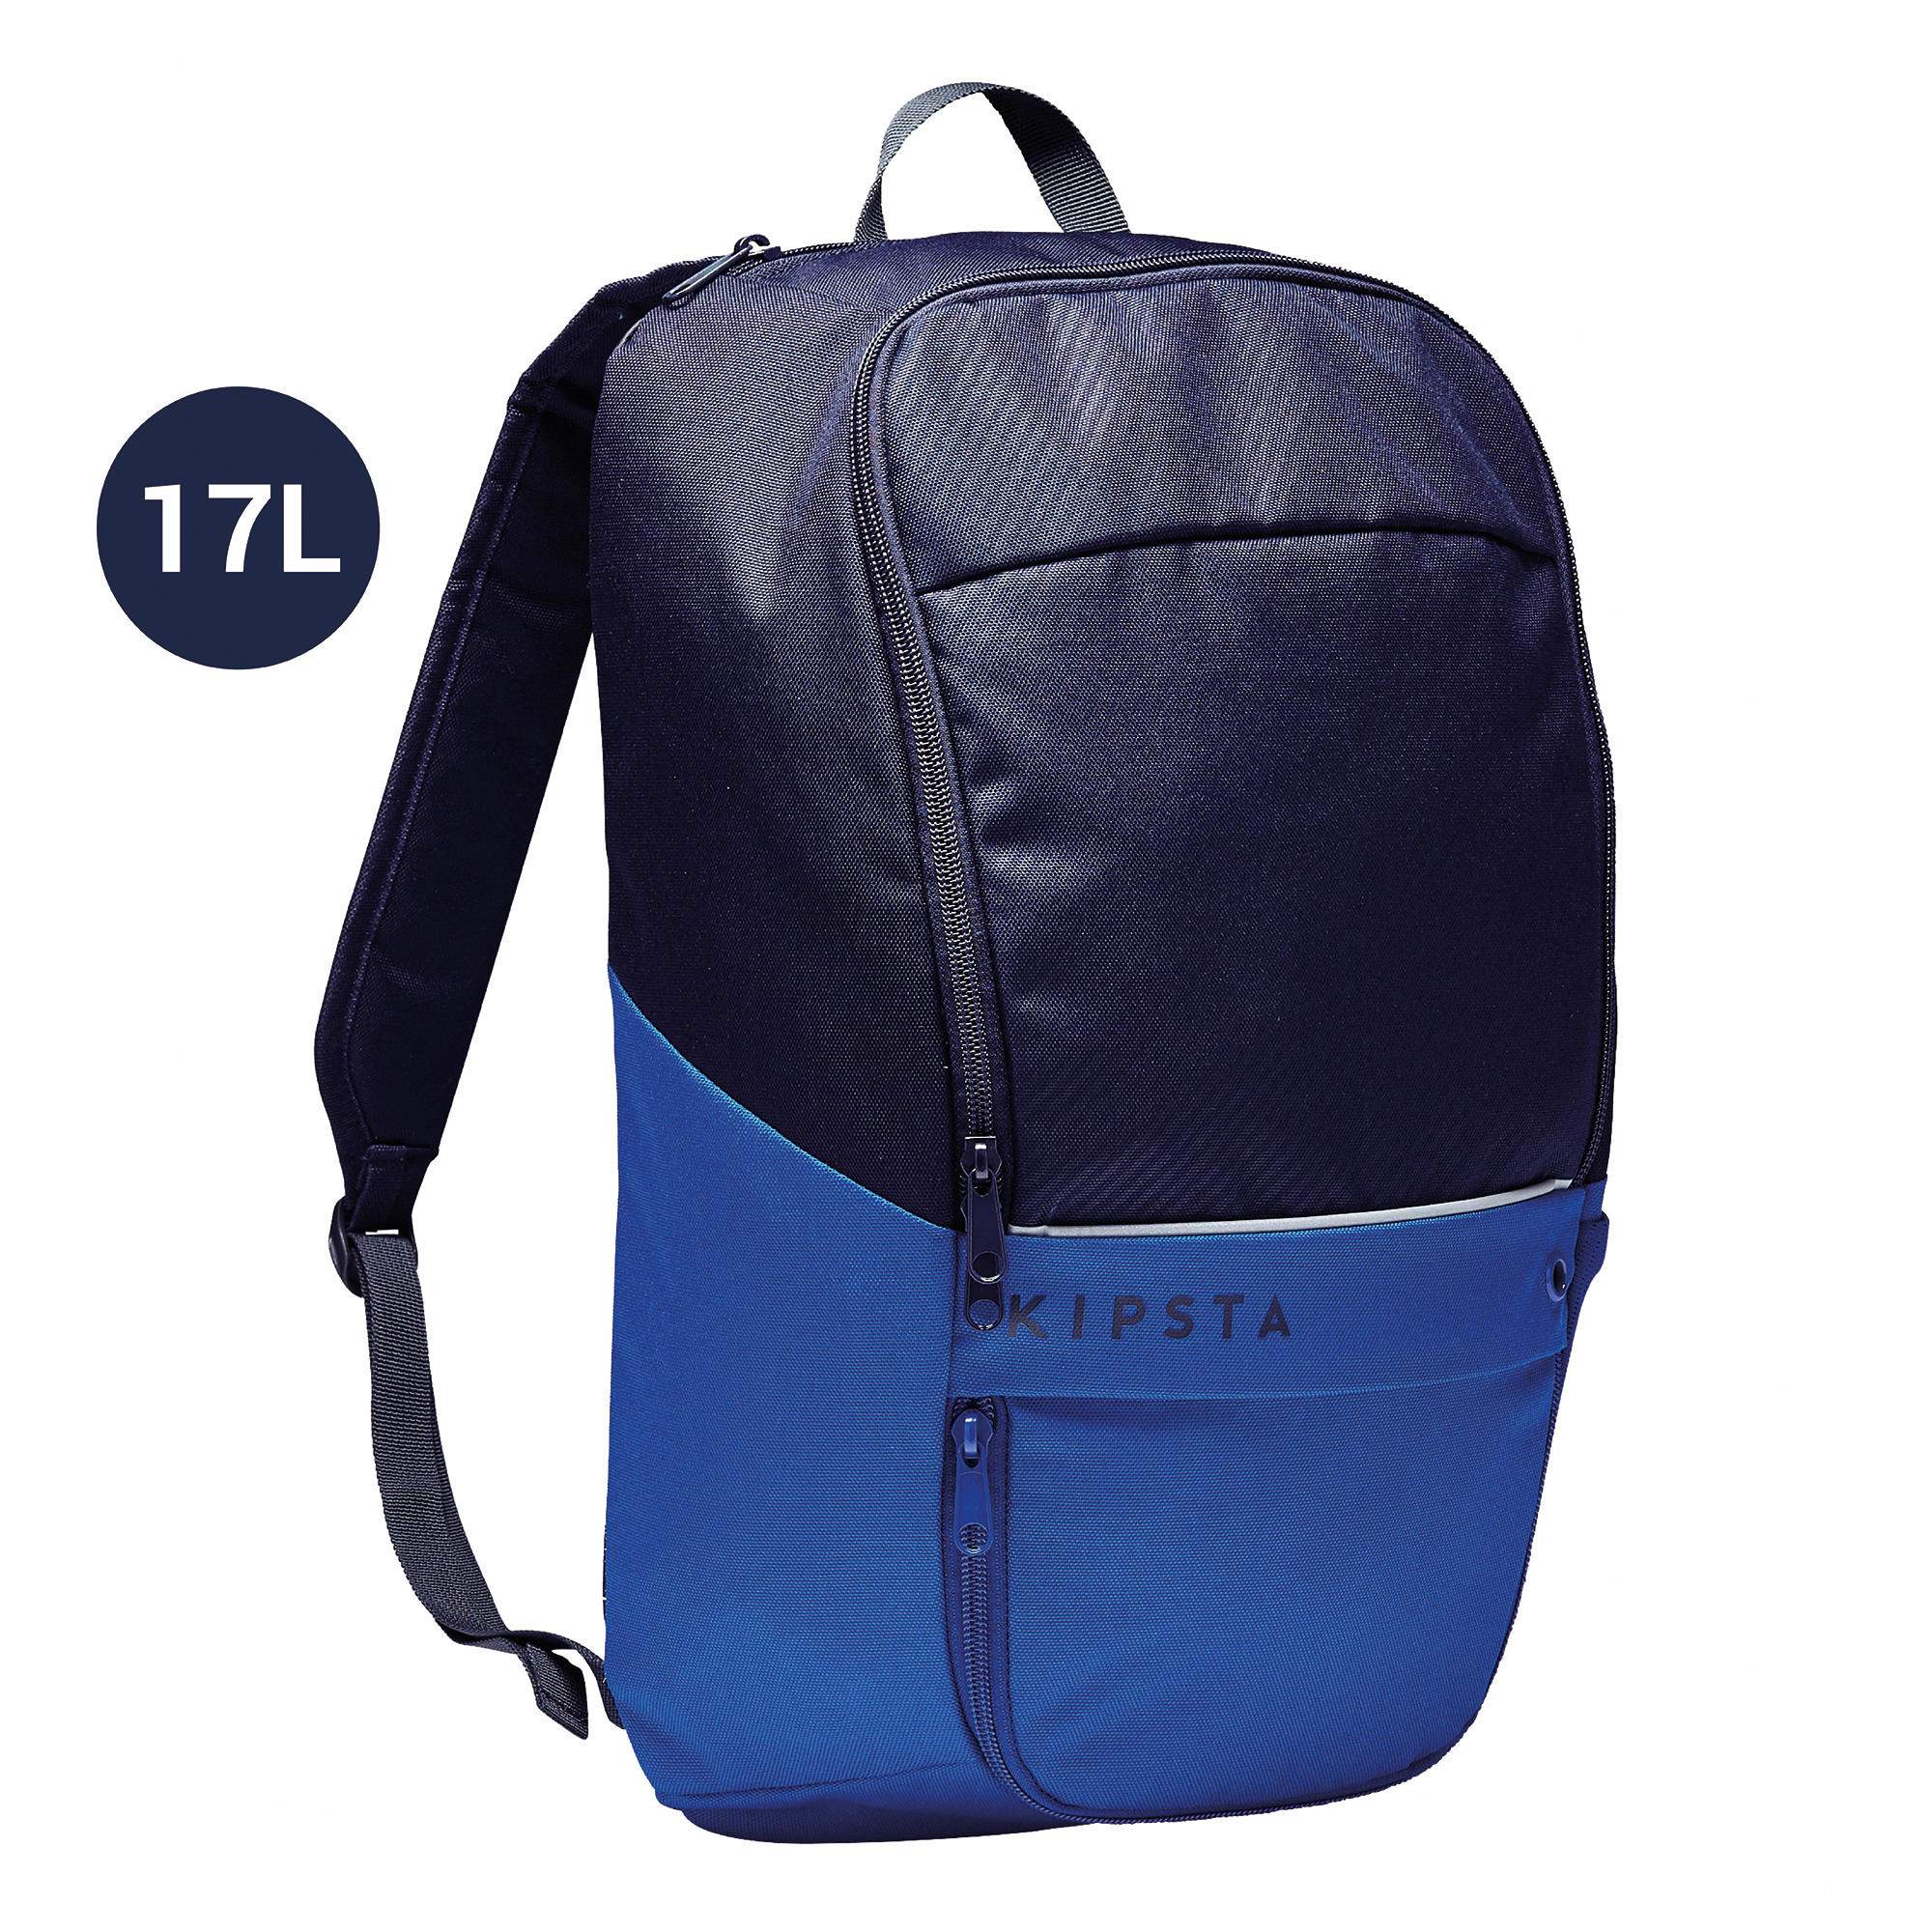 Classic 17 L Team Sports Backpack - Blue/Black/Indigo